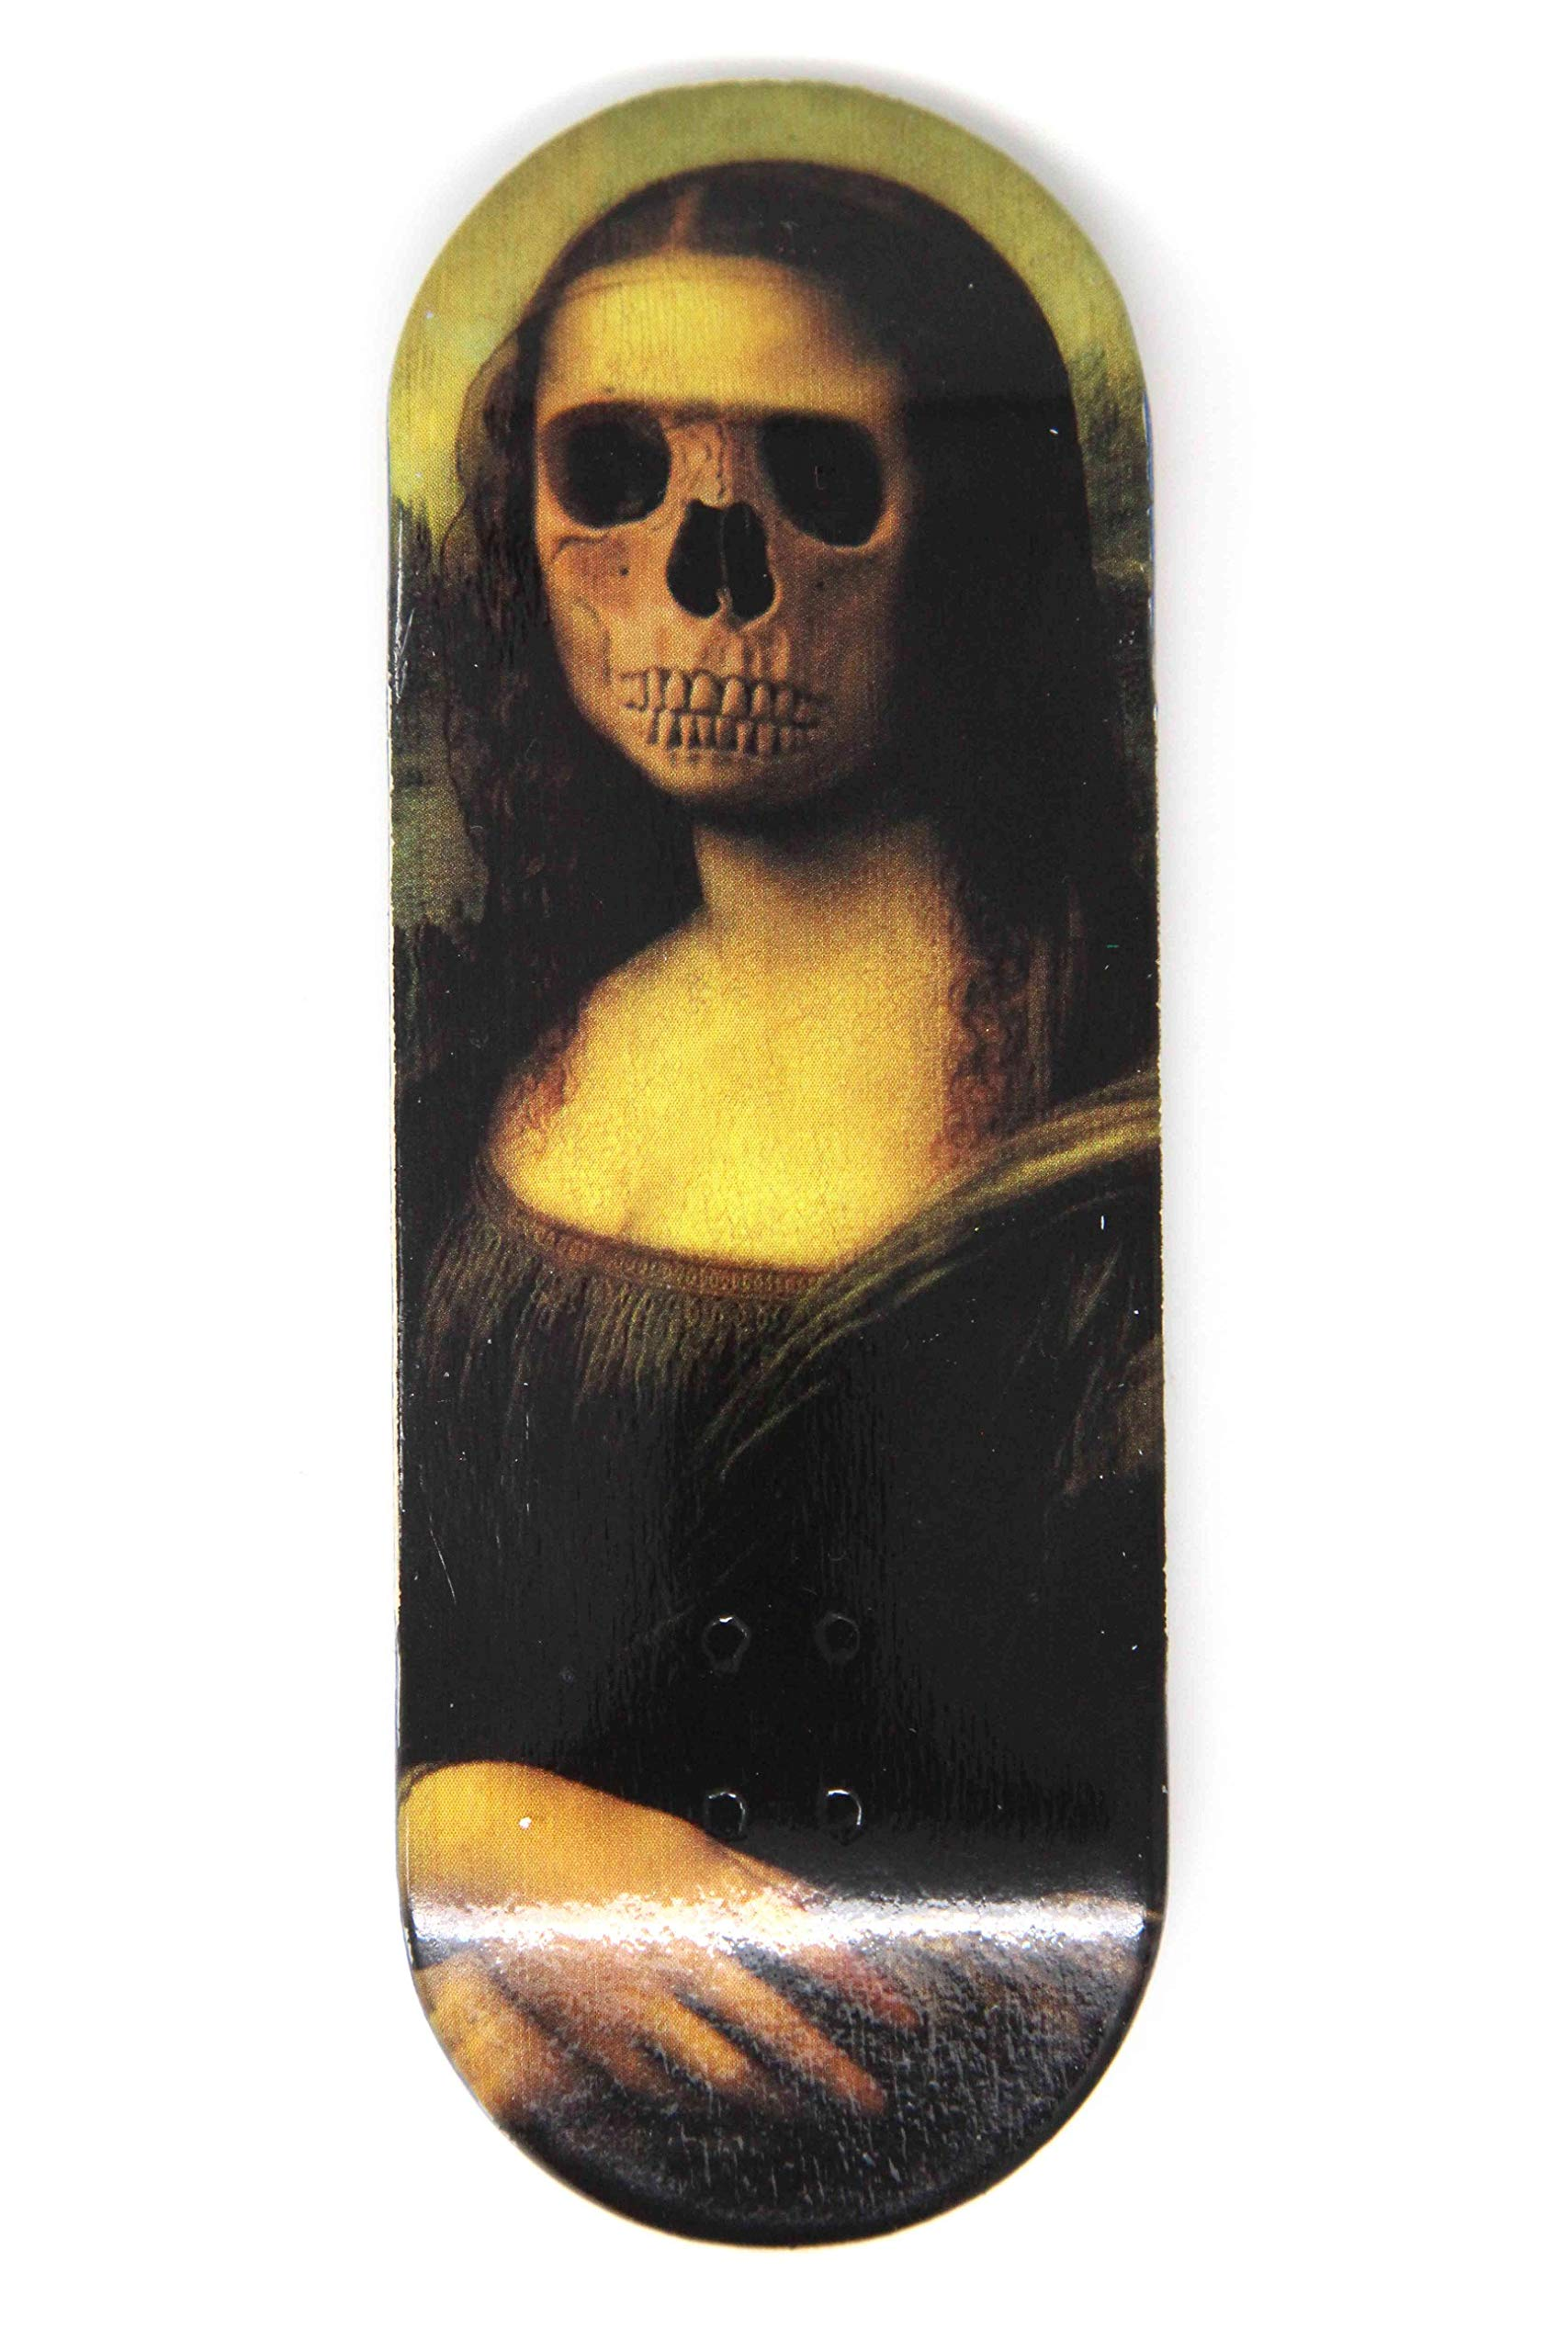 Skull Fingerboards Mona 34mm Complete Professional Wooden Fingerboard Mini Skateboard 5 PLY with CNC Bearing Wheels by Skull Fingerboards (Image #2)